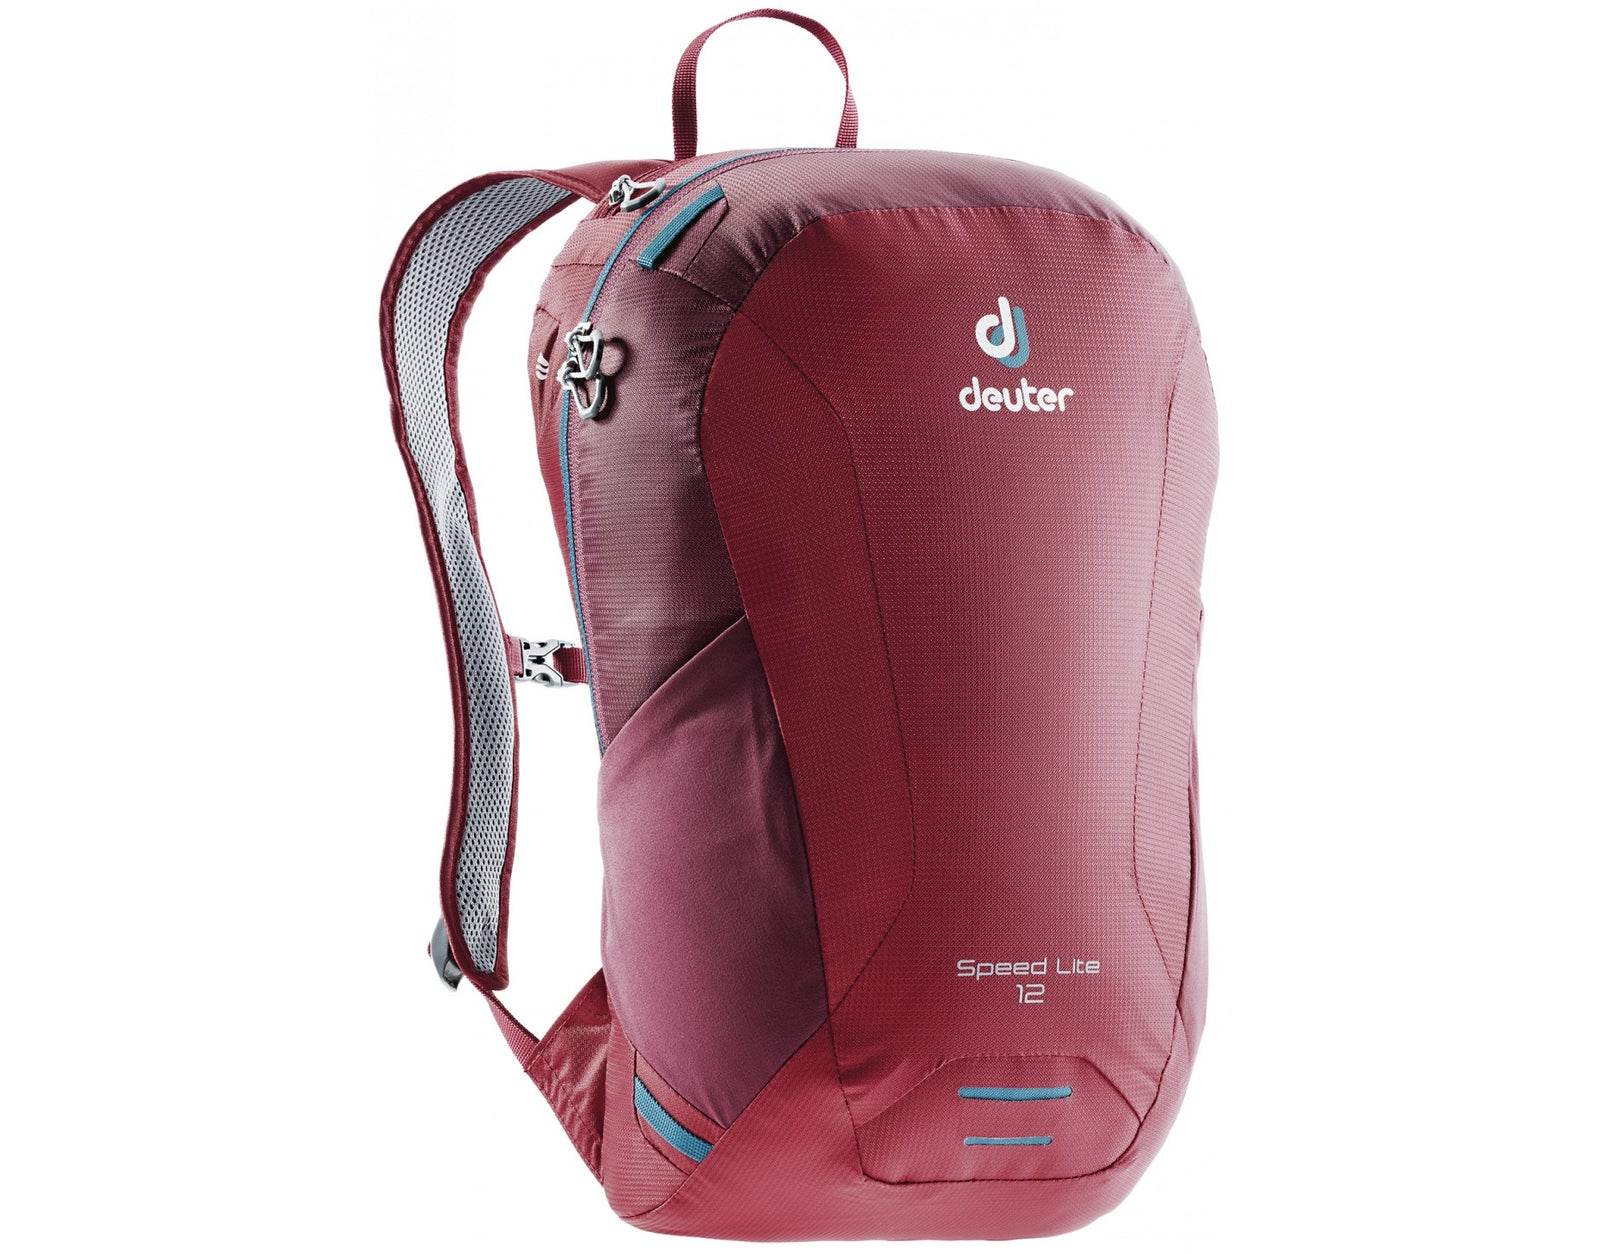 Deuter Speed Lite 12 - Trailblazer Outdoors, Pickering